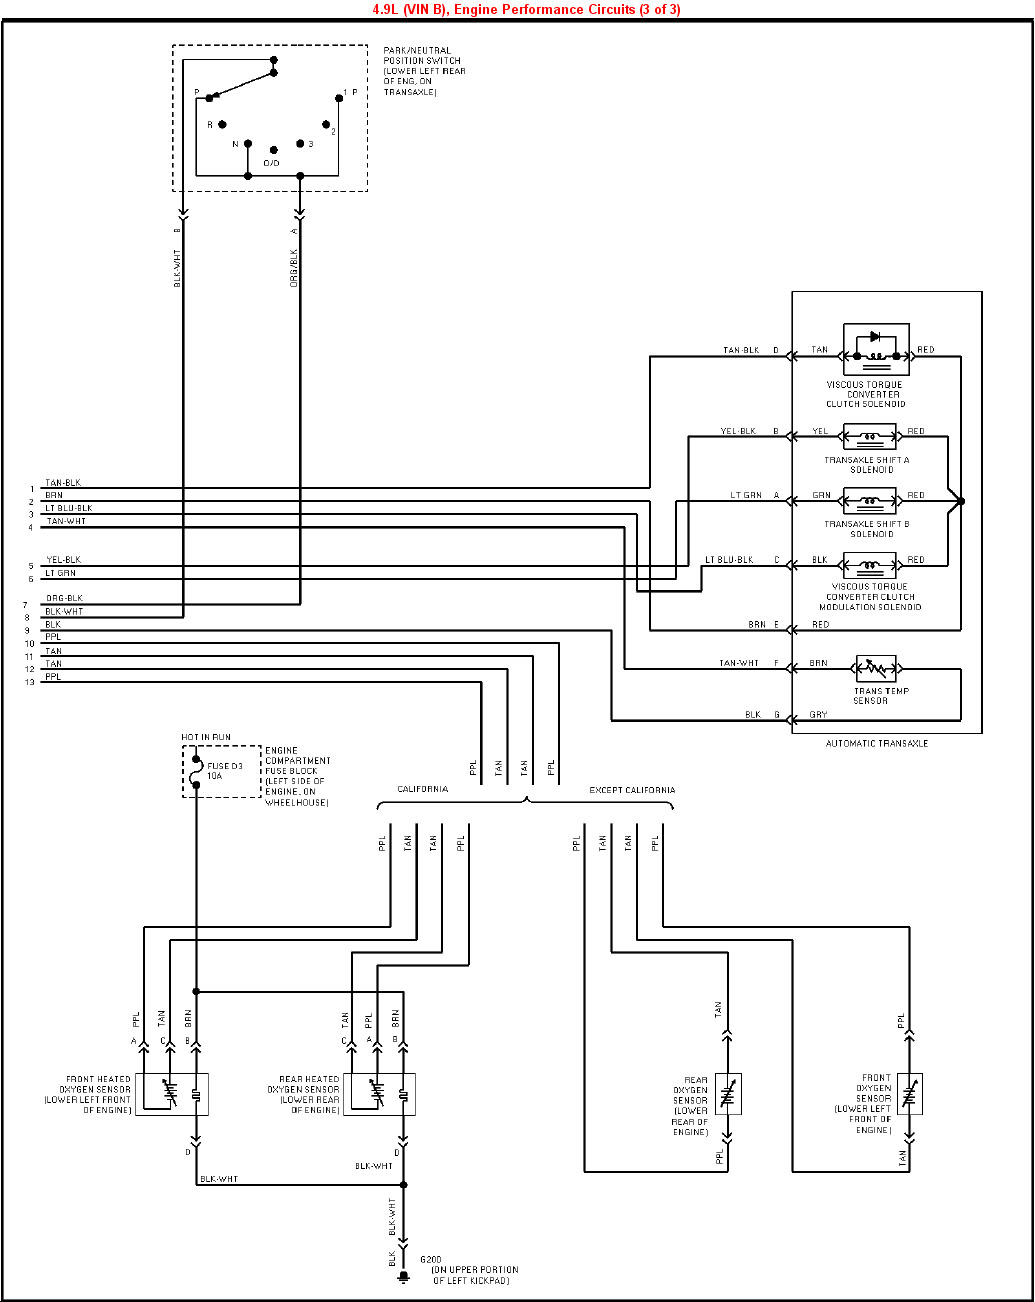 Wiring Diagram Of 4 9 Cadillac Reveolution 01 Deville Wire 1995 Diagrams Schematic Rh Ogmconsulting Co Eldorado 1965